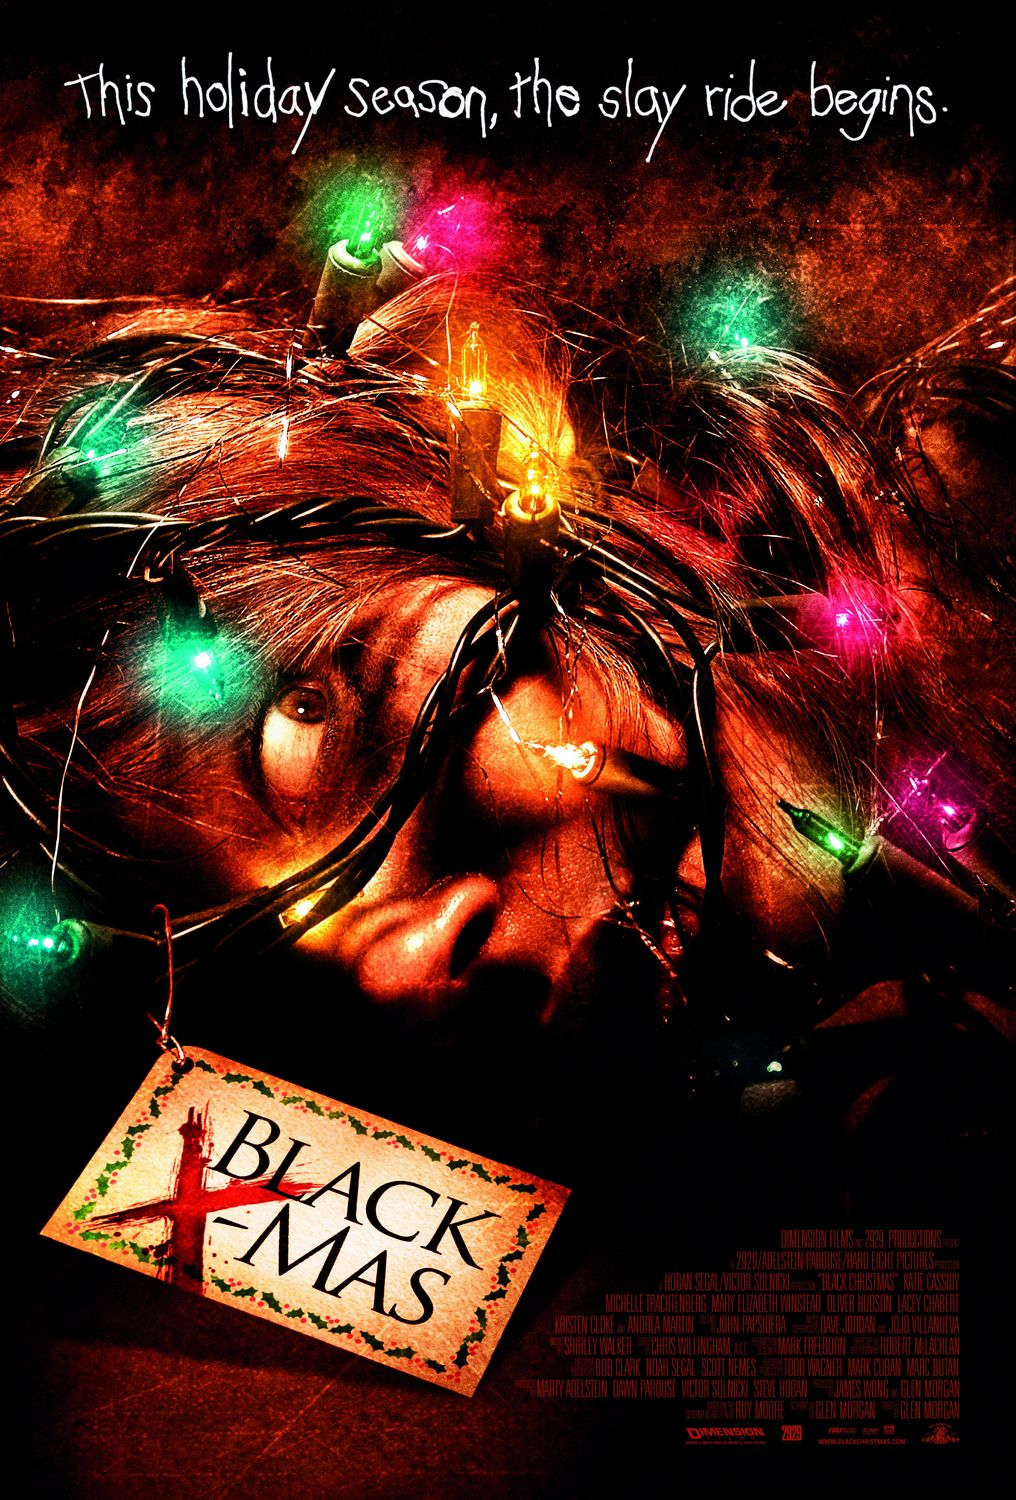 Black Christmas Official 2006 Theatrical Poster